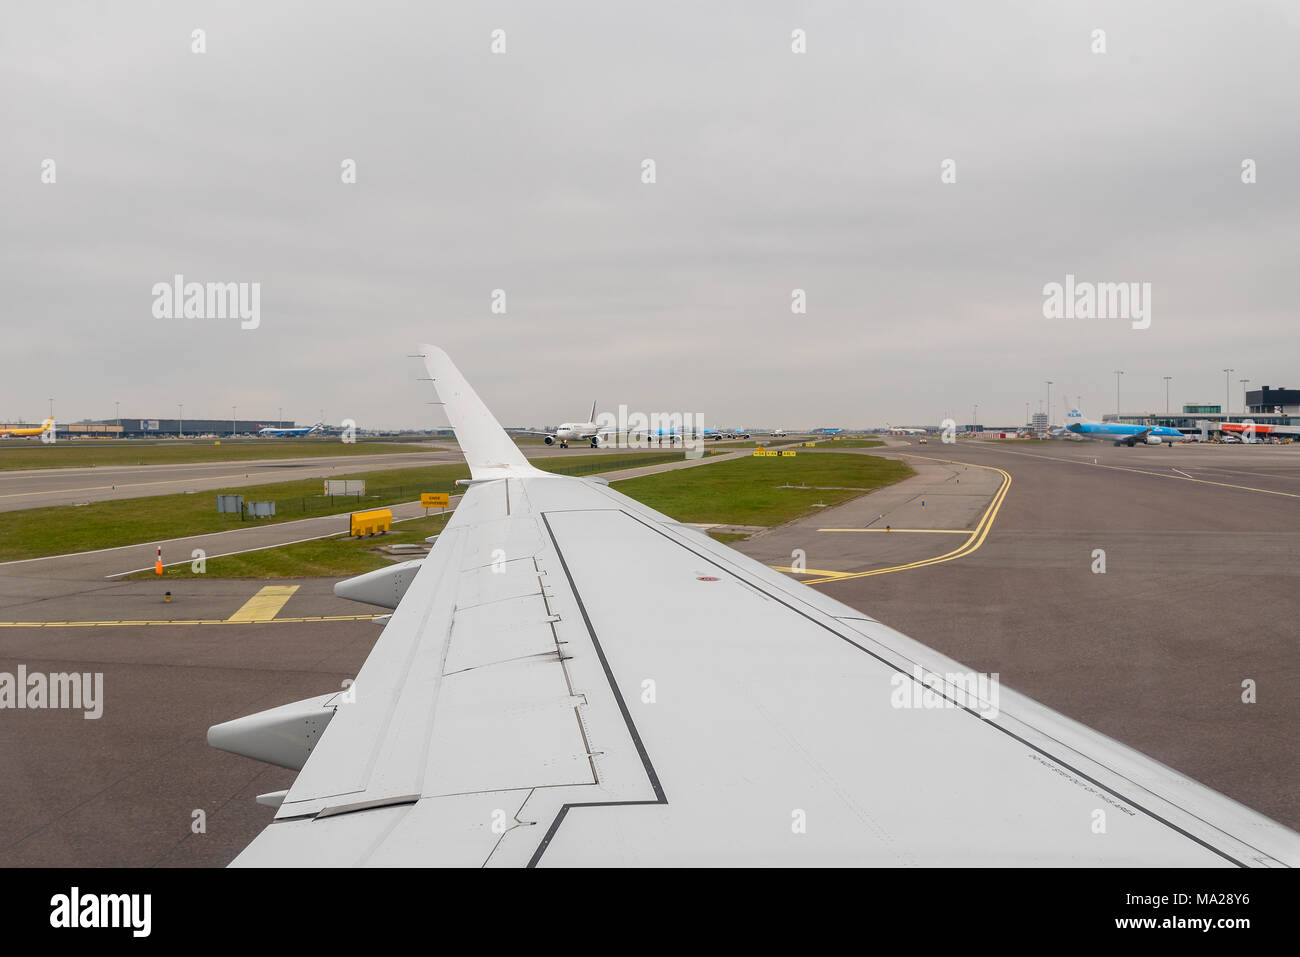 A view out of a landed passenger airplane taxiing along a runway looking at queue of lined up aircraft at Amsterdam Airport Schiphol, Netherlands. - Stock Image